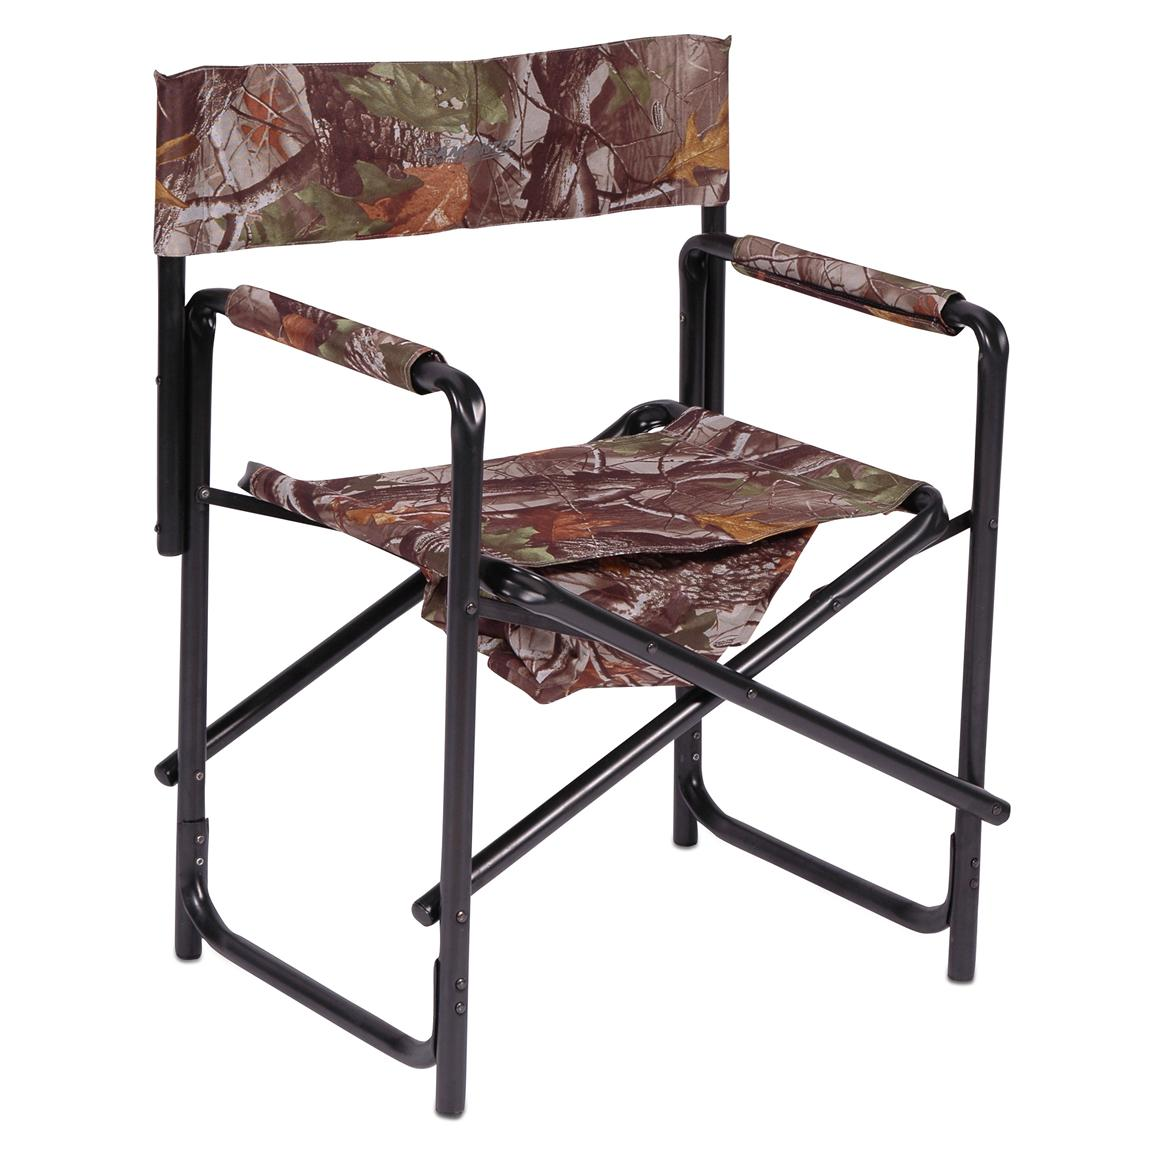 director chairs for sale glider rocker chair ottoman australia ameristep camo 39s 109827 stools